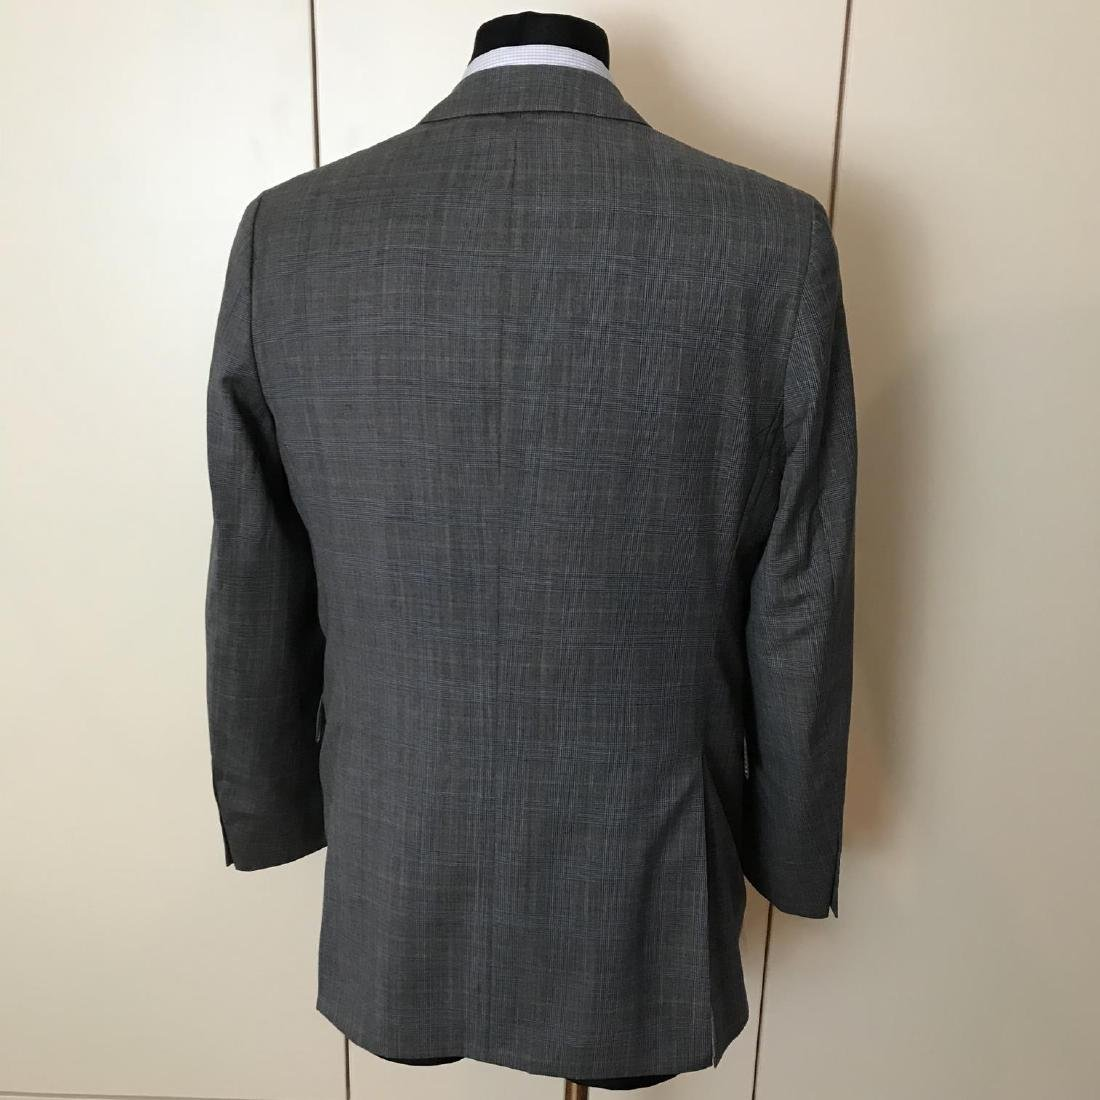 Men's Burberry 100% Virgin Wool Blazer Jacket Size 50 - 5